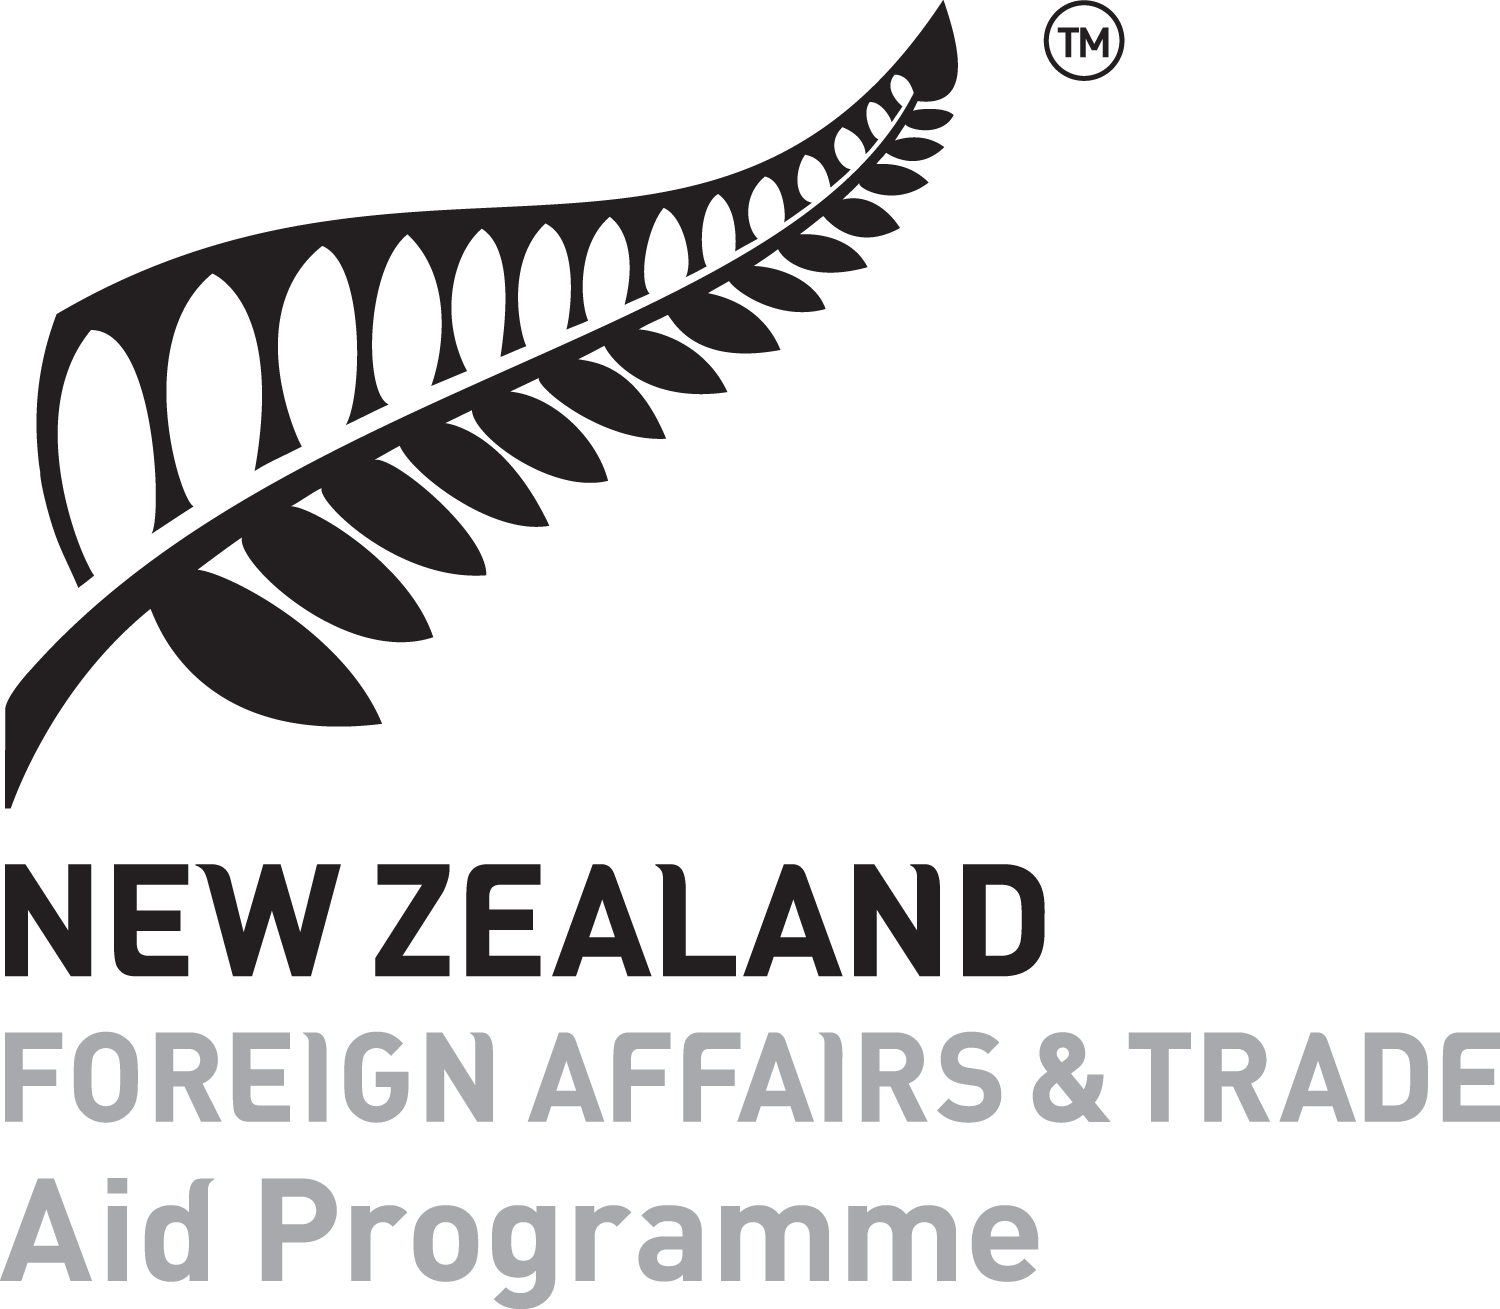 NZ Aid logo_BLK-SIL.png